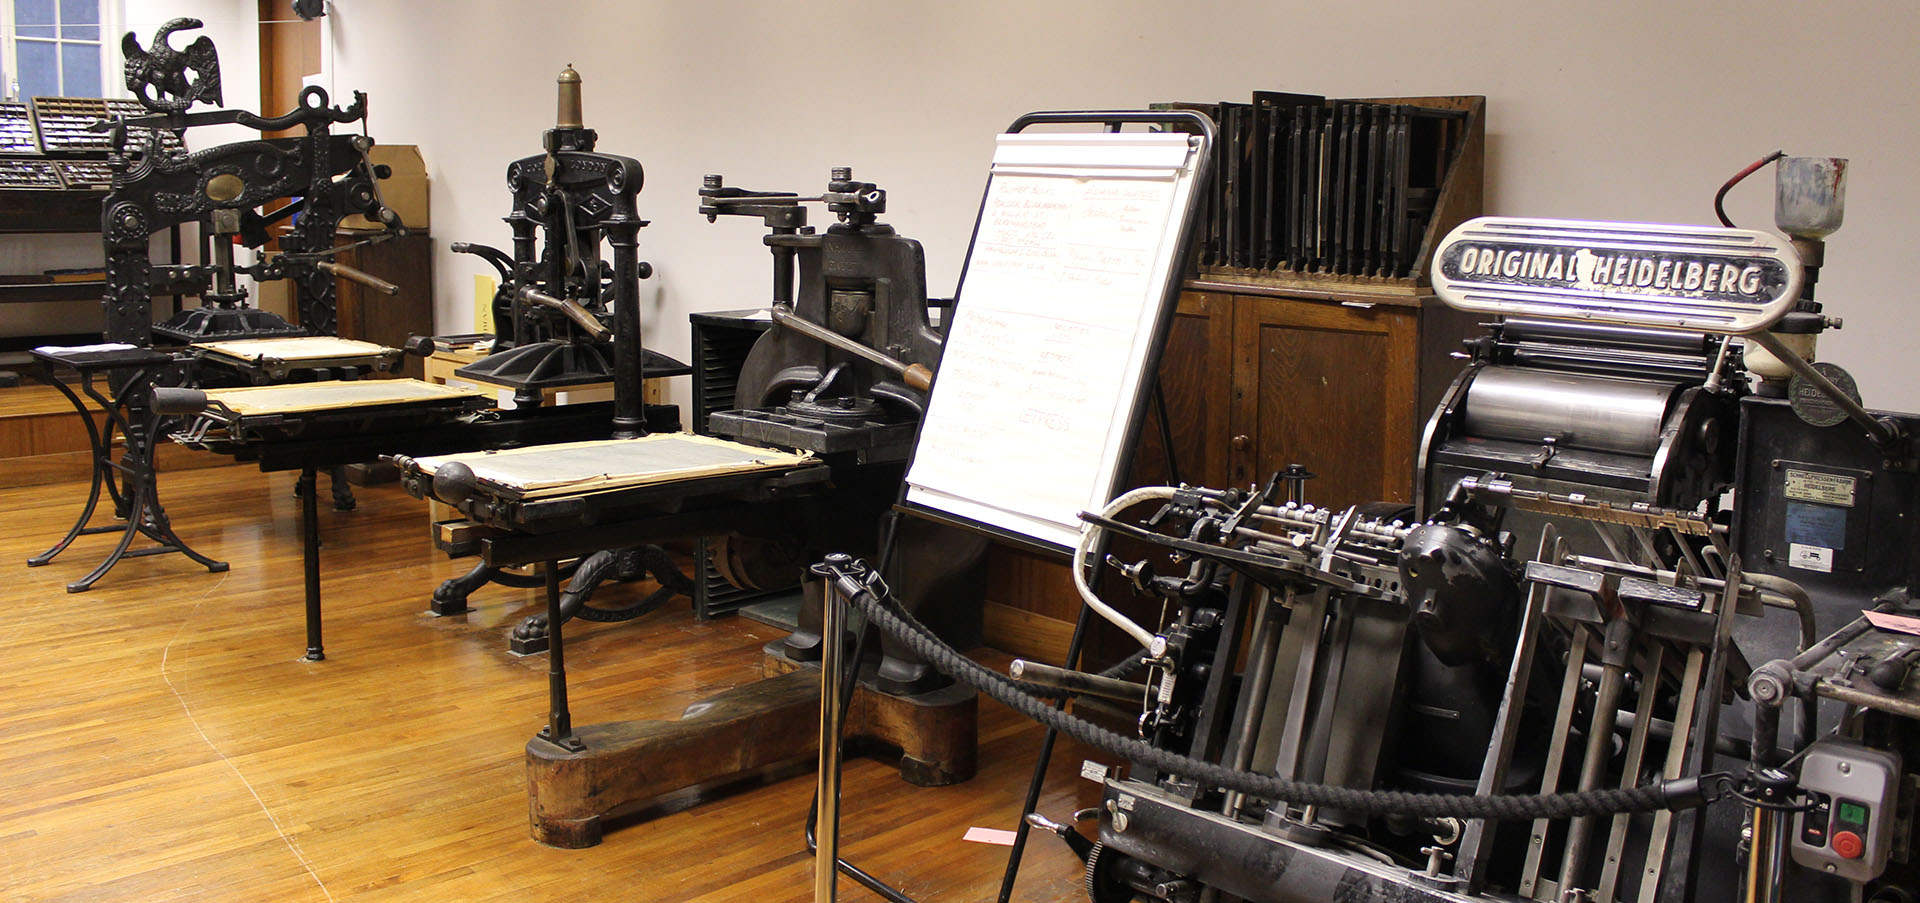 St Bride's Printing Machines